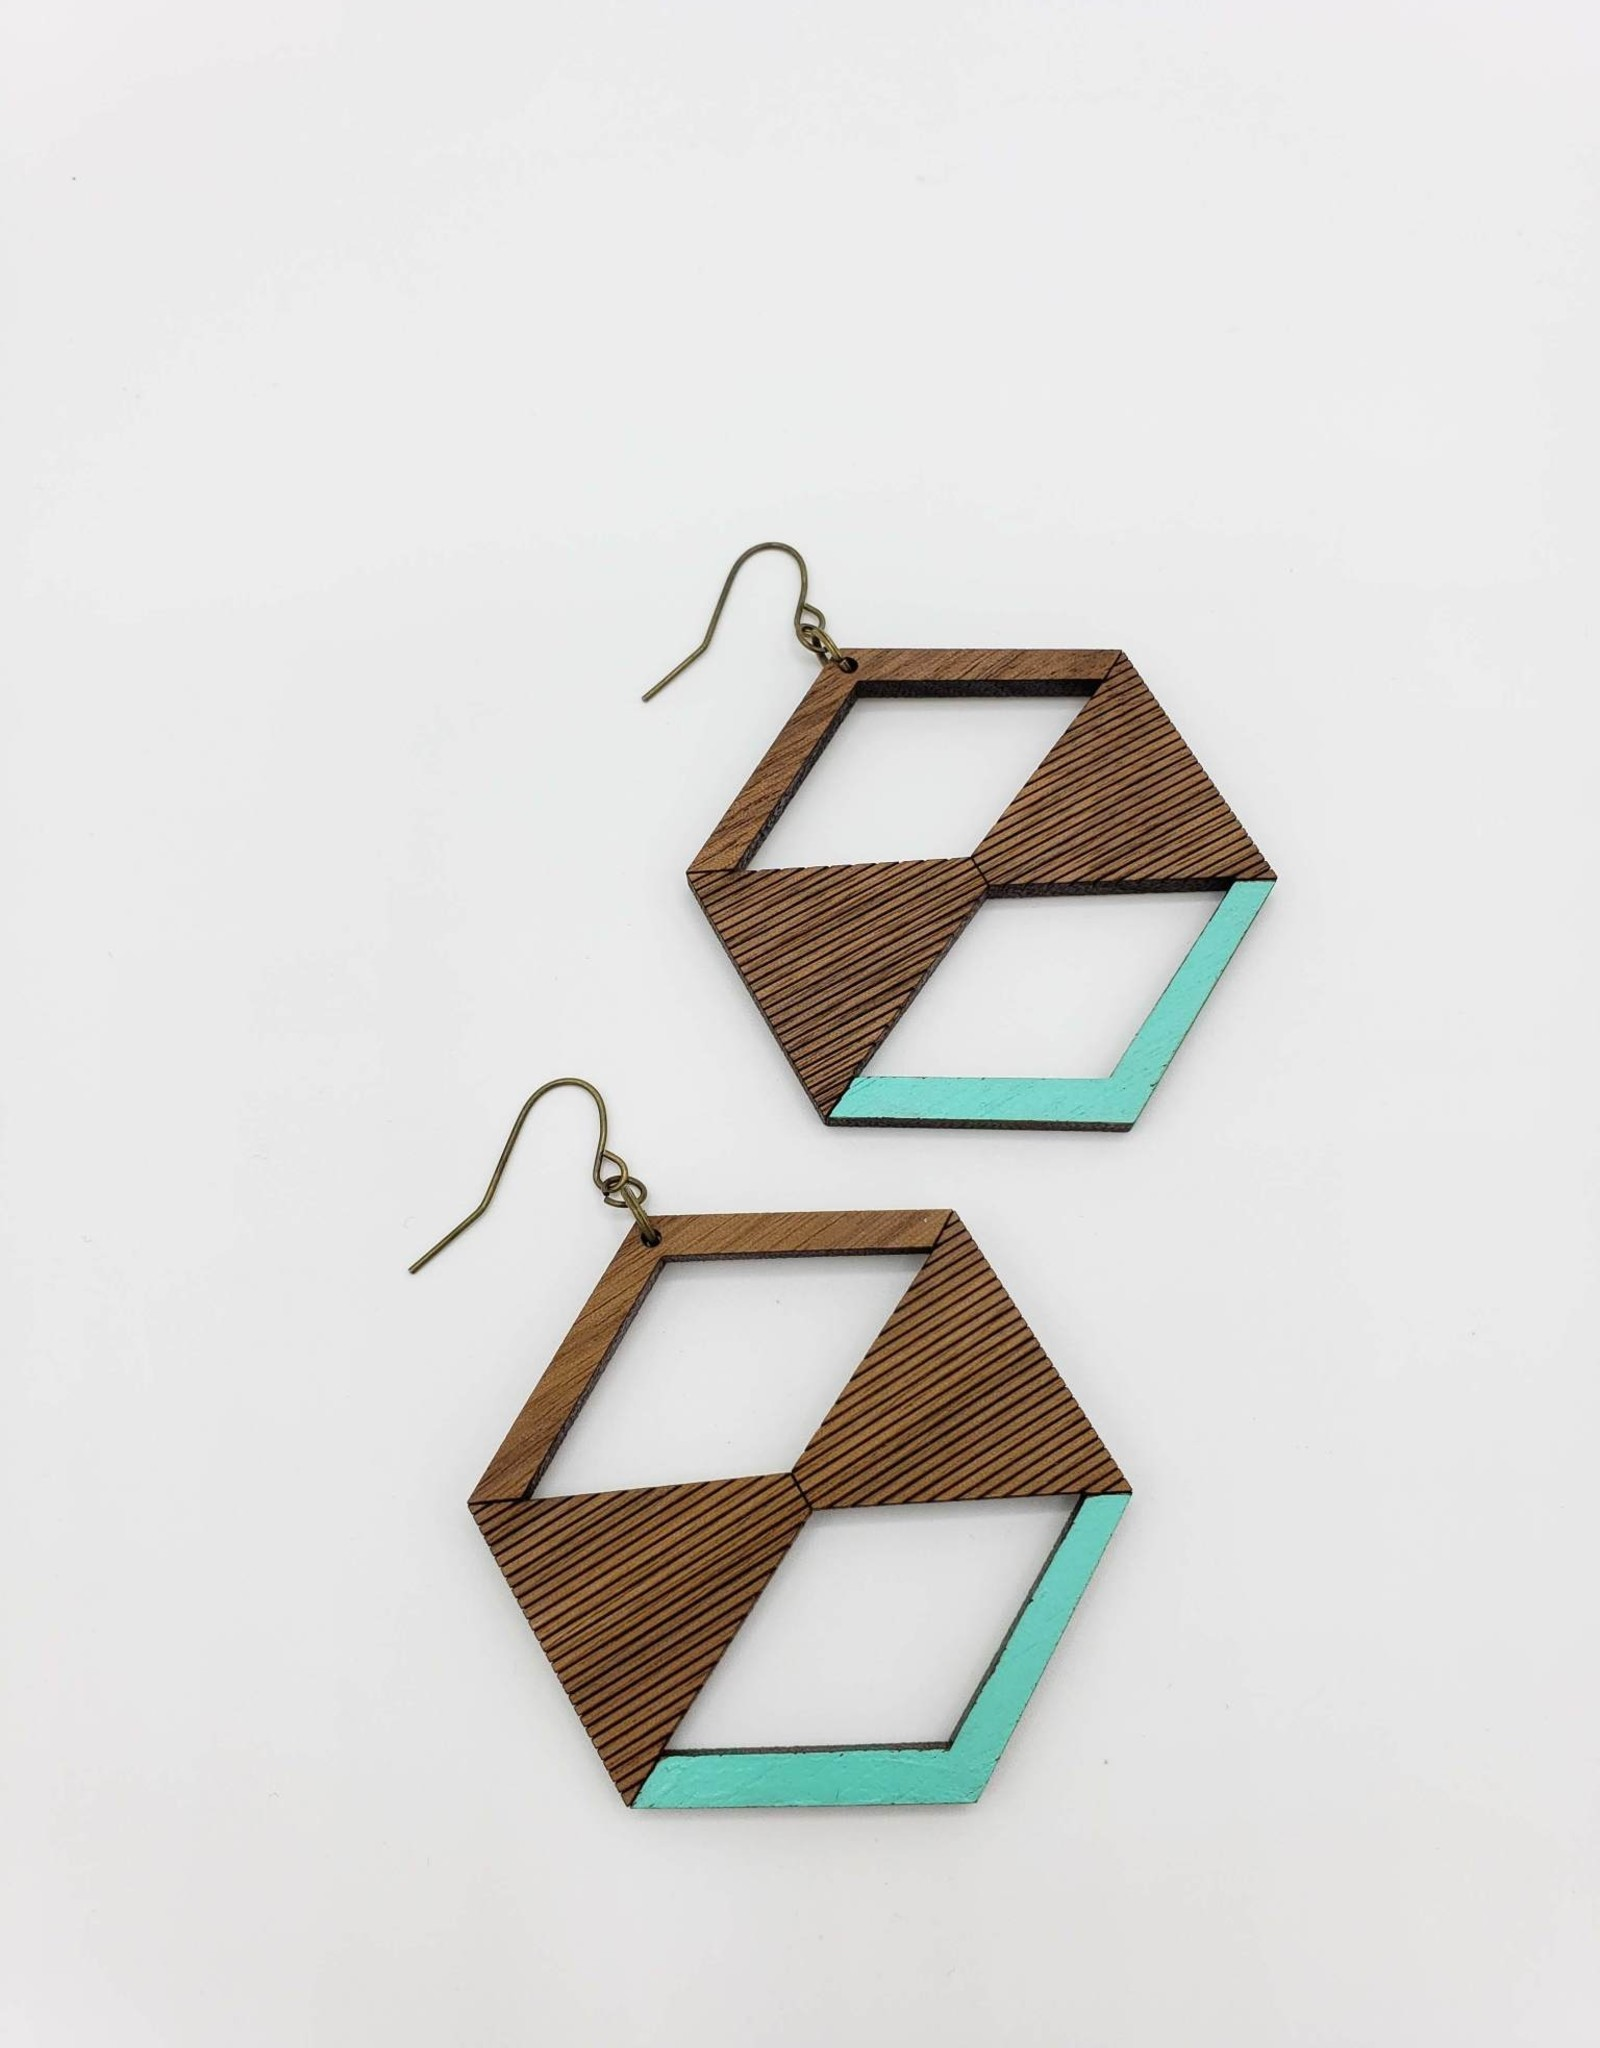 Bloom & Grow Designs Ole Swiss Earrings Hexagon with Triangles with Painted Accents